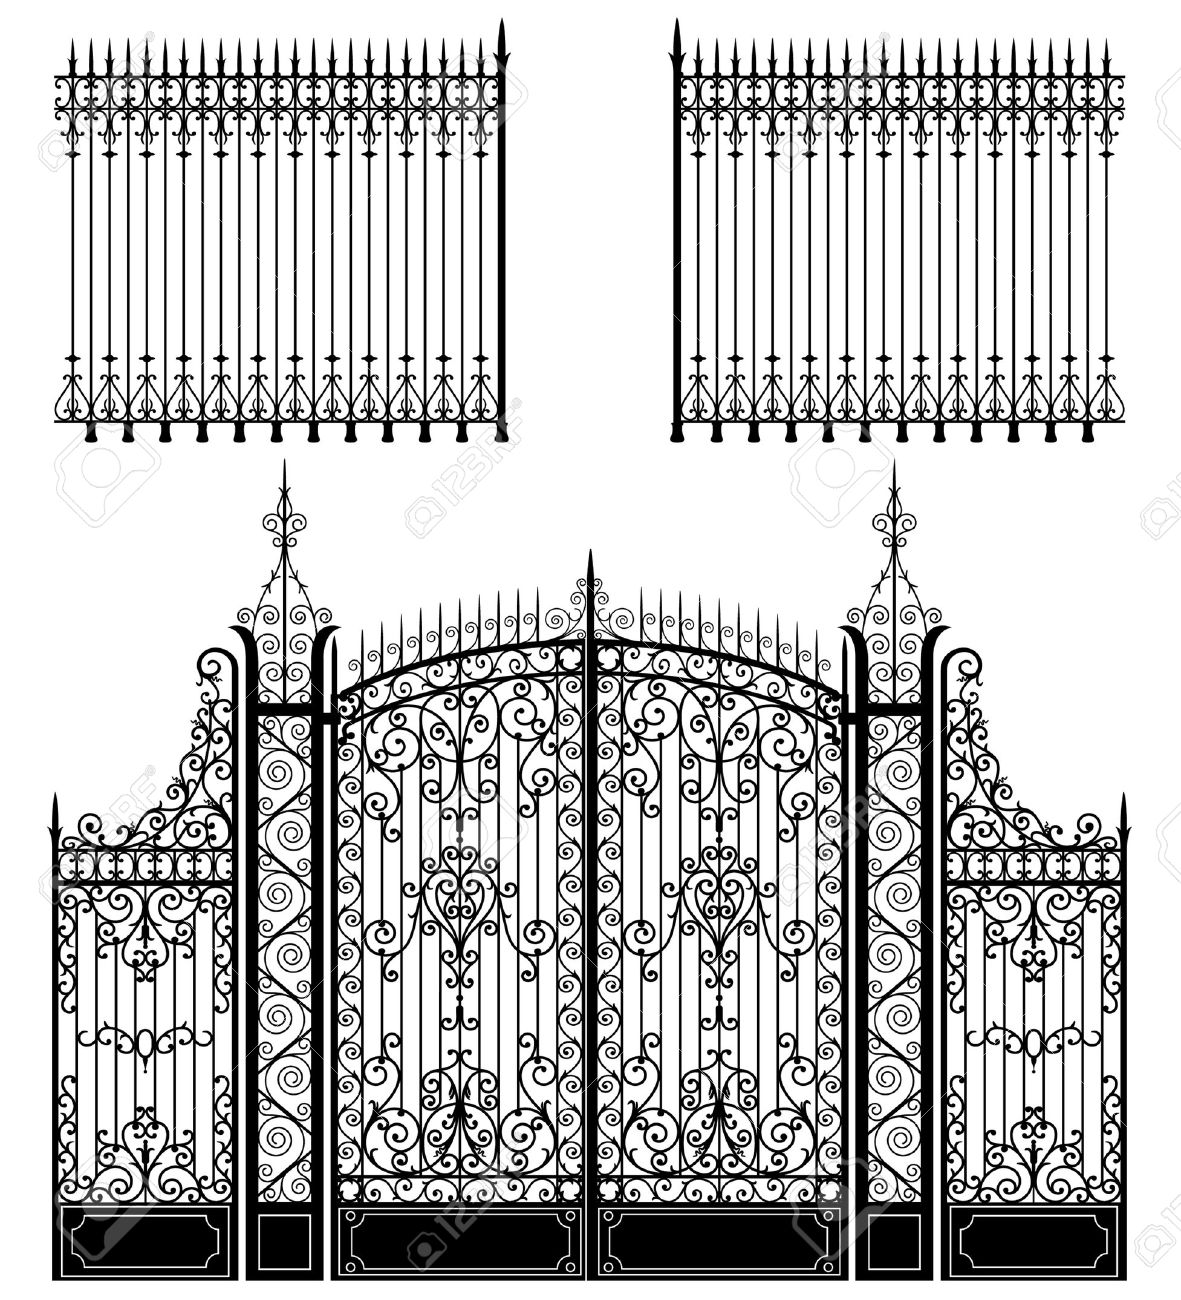 Wrought iron gate and fences full of swirled decorations Stock Vector - 5380068